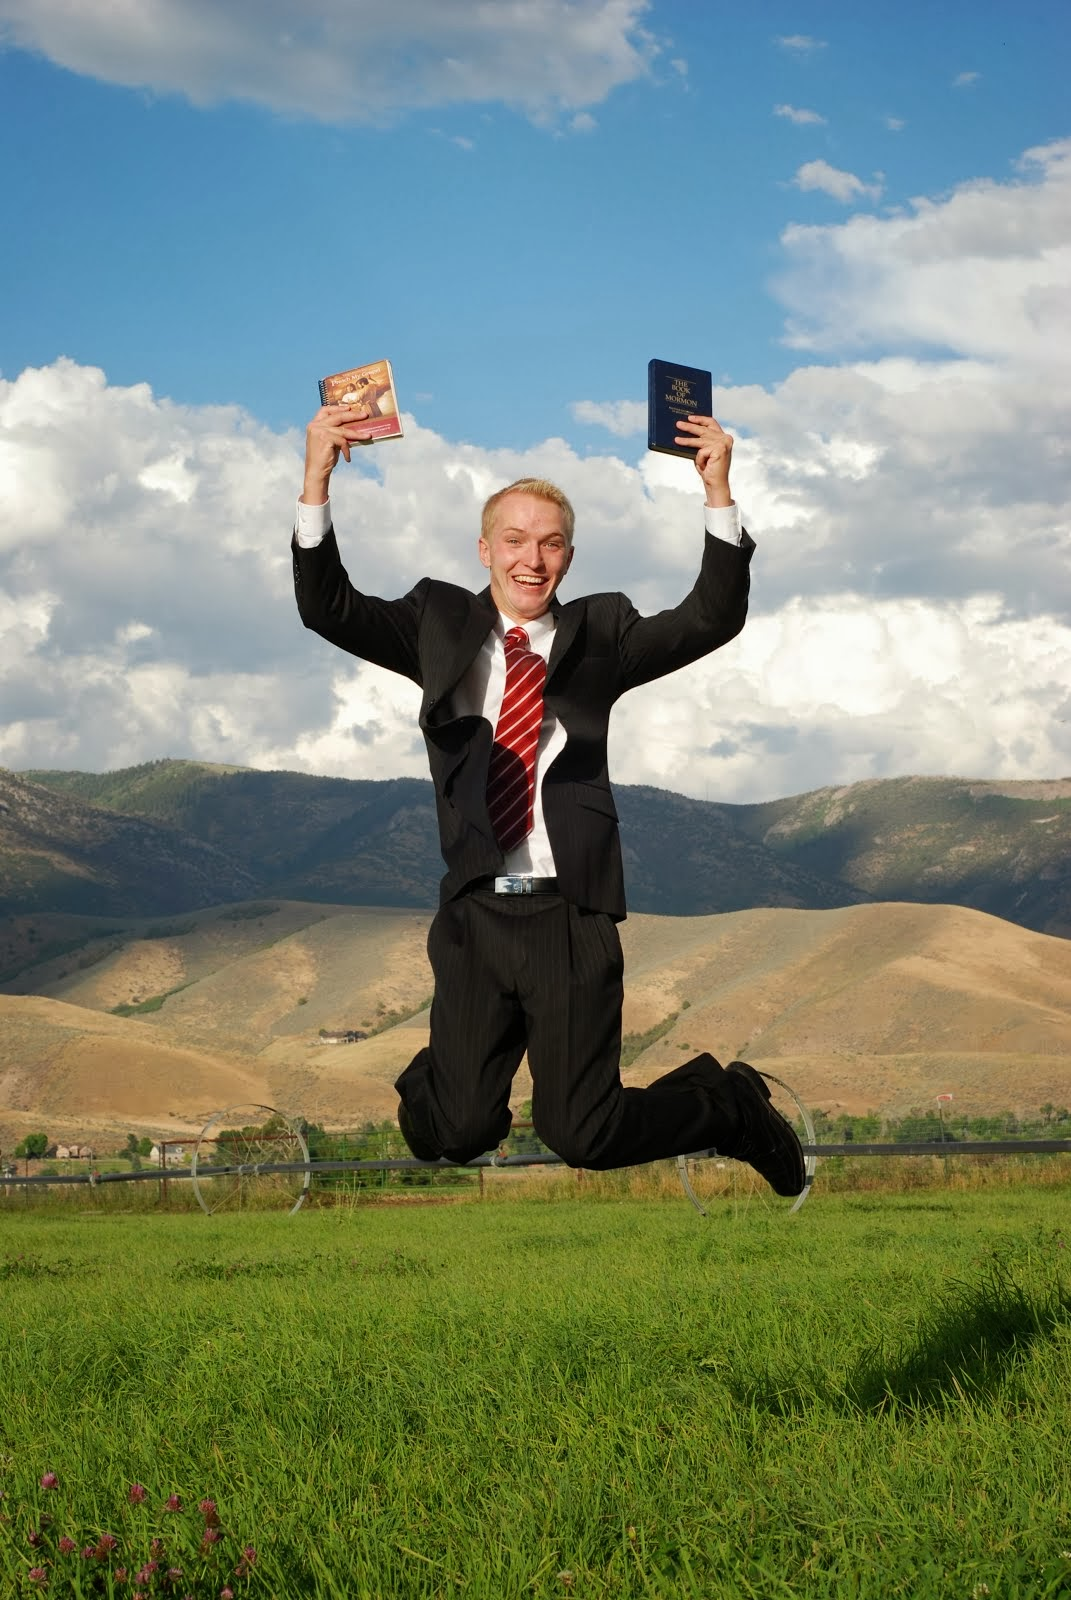 I love being a missionary!